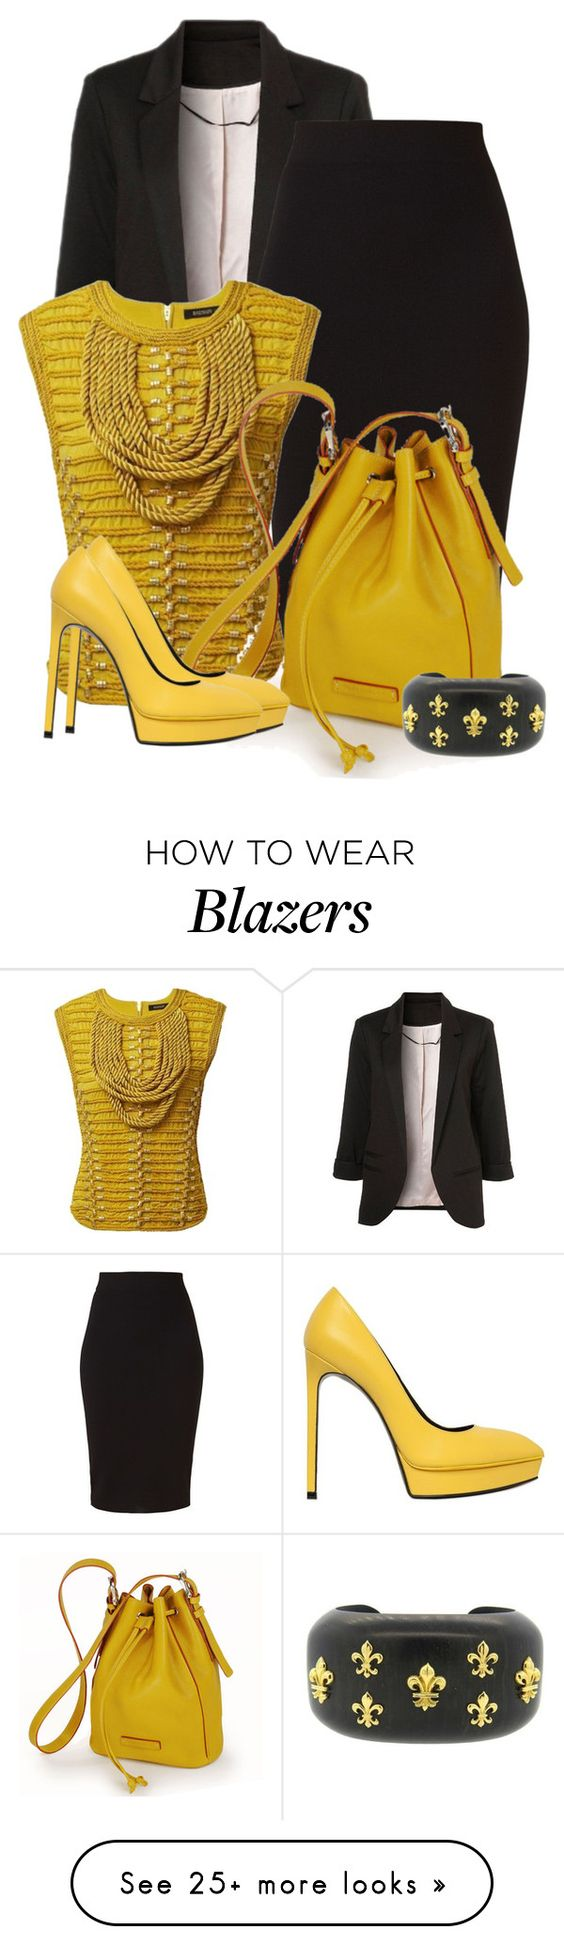 """""""Easy and Real"""" by ljbminime on Polyvore featuring WithChic, Winser London, Balmain, Yves Saint Laurent, Trianon, women's clothing, women's fashion, women, female and woman"""